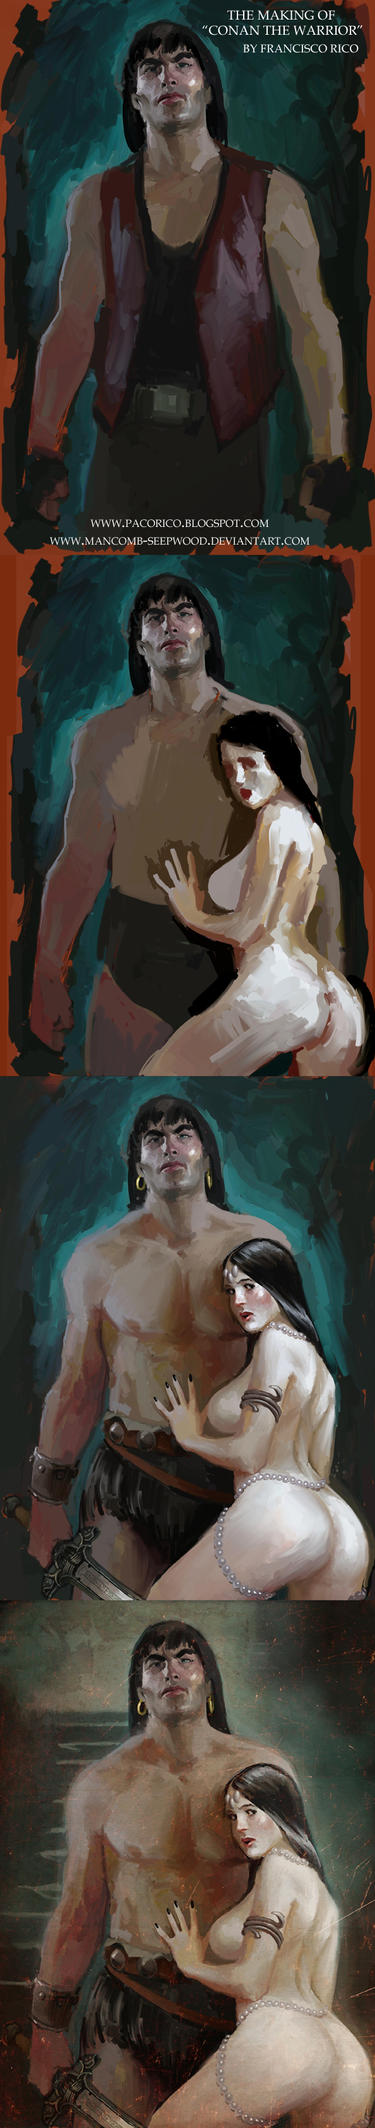 The making of Conan by Mancomb-Seepwood